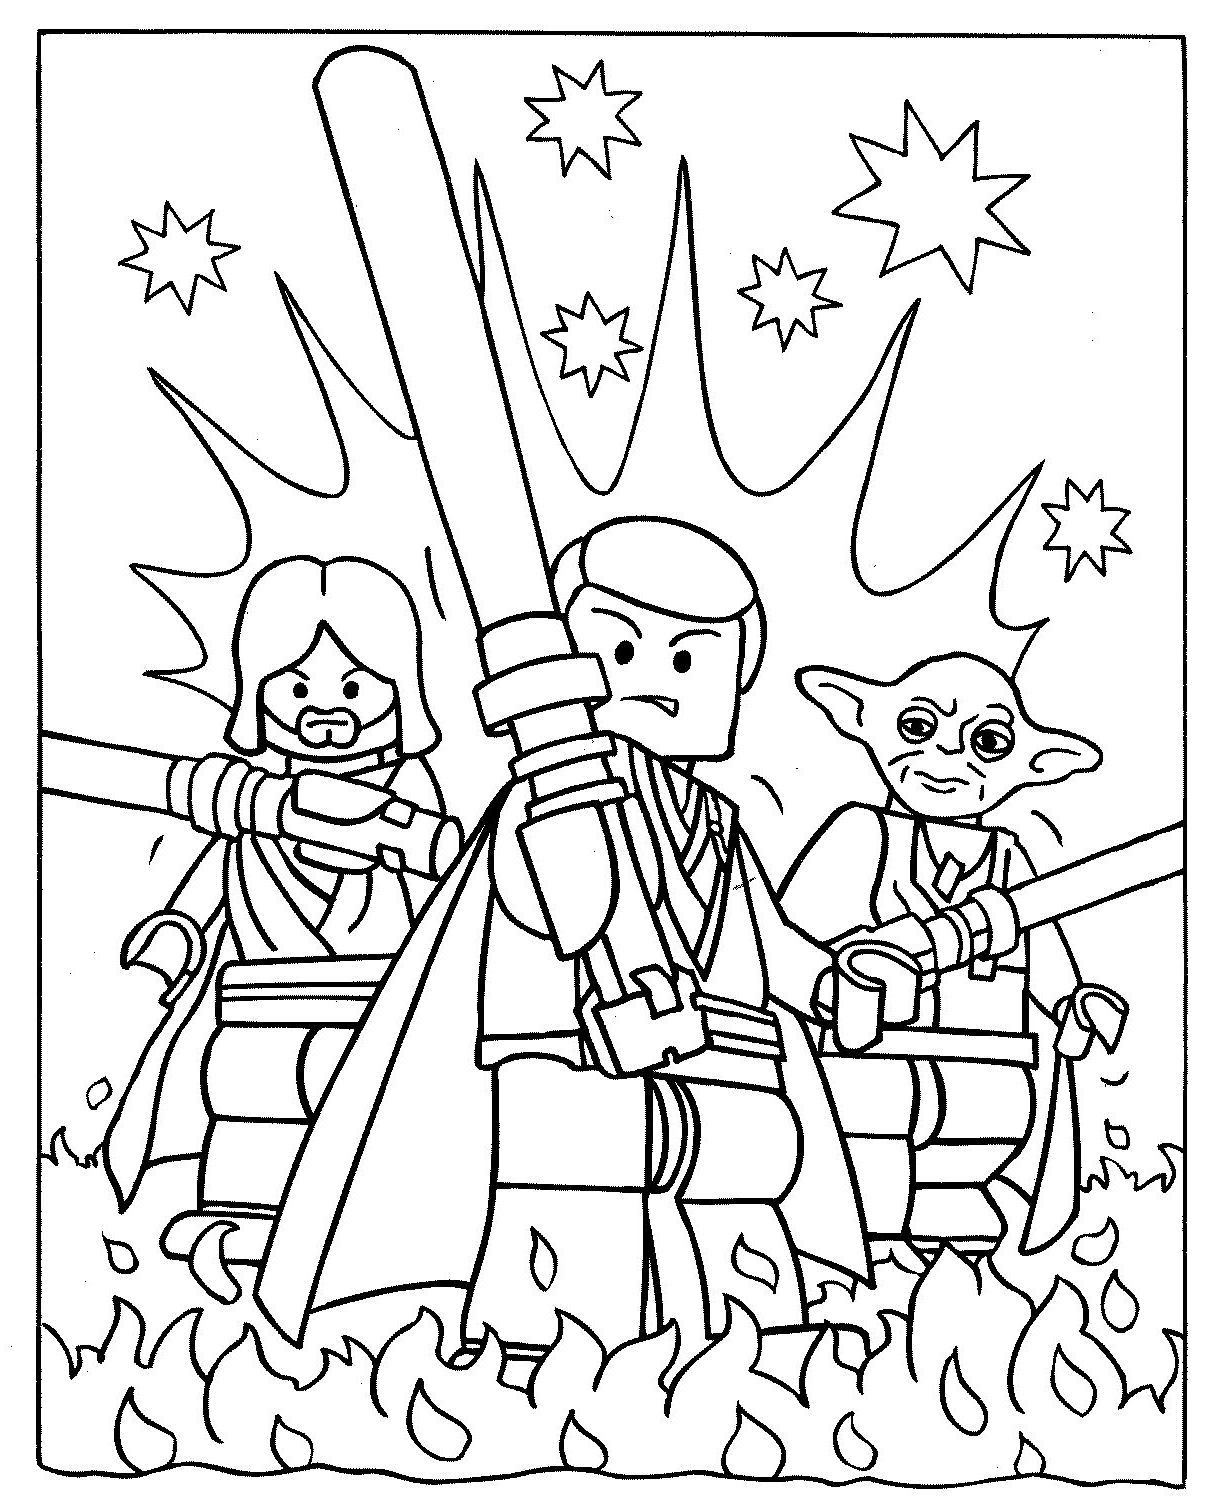 Obi Wan And Luke Skywalker With Yoda Coloring Pages Star Wars ...